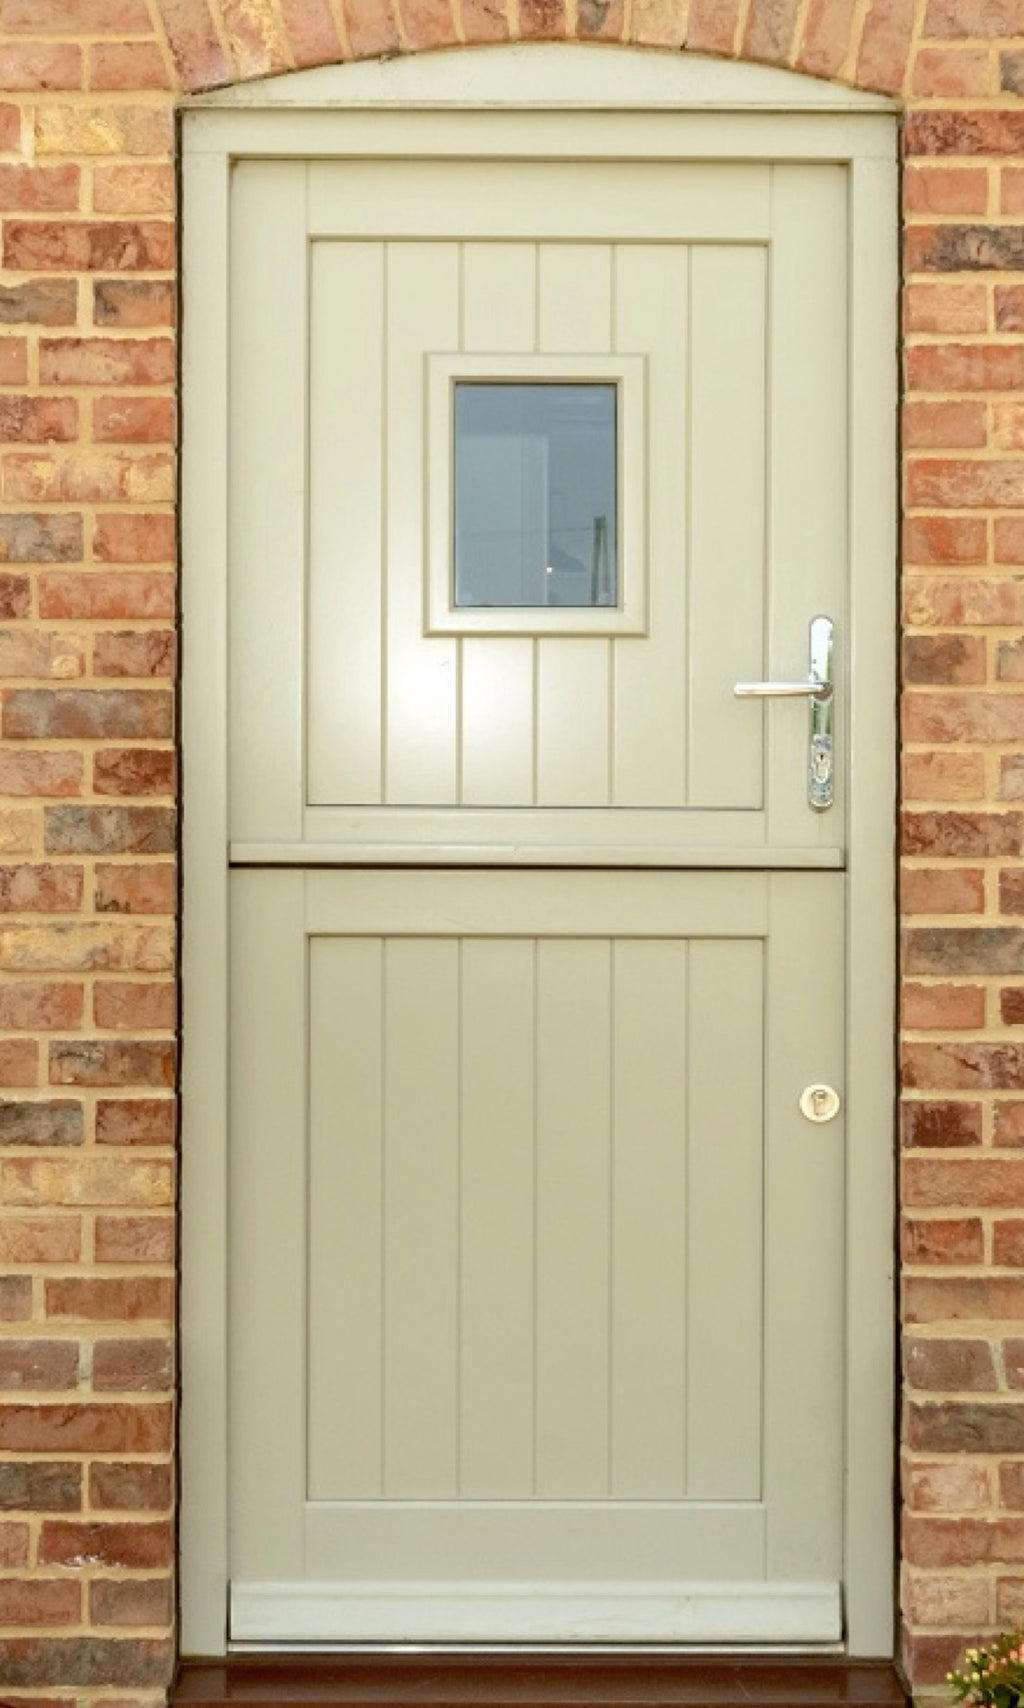 Stable Bespoke external timber door and frame